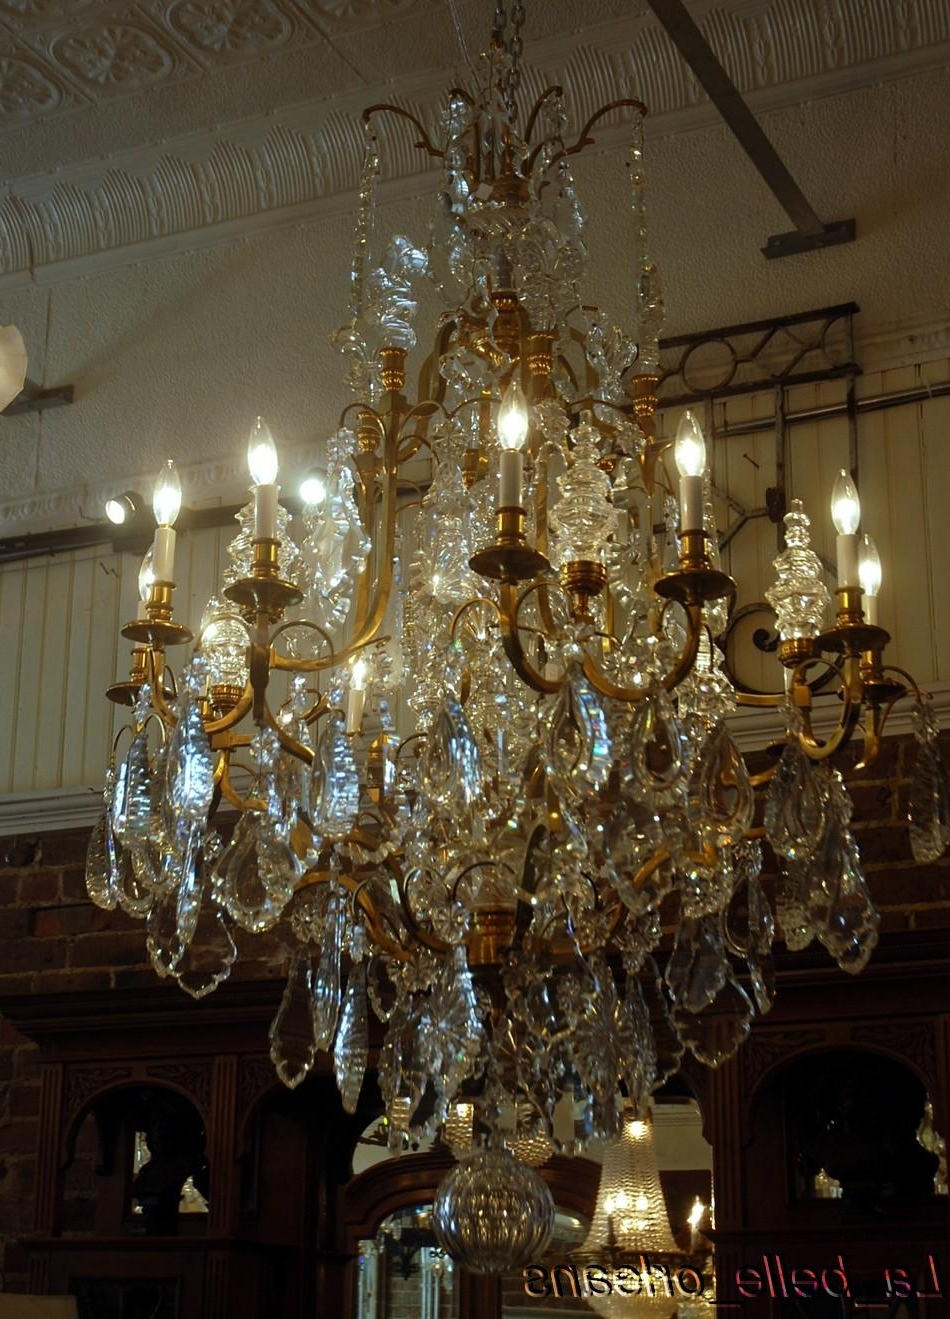 French Crystal Chandeliers Within Recent Monumental Pair French Crystal & Bronze Chandeliers For Sale (View 13 of 20)